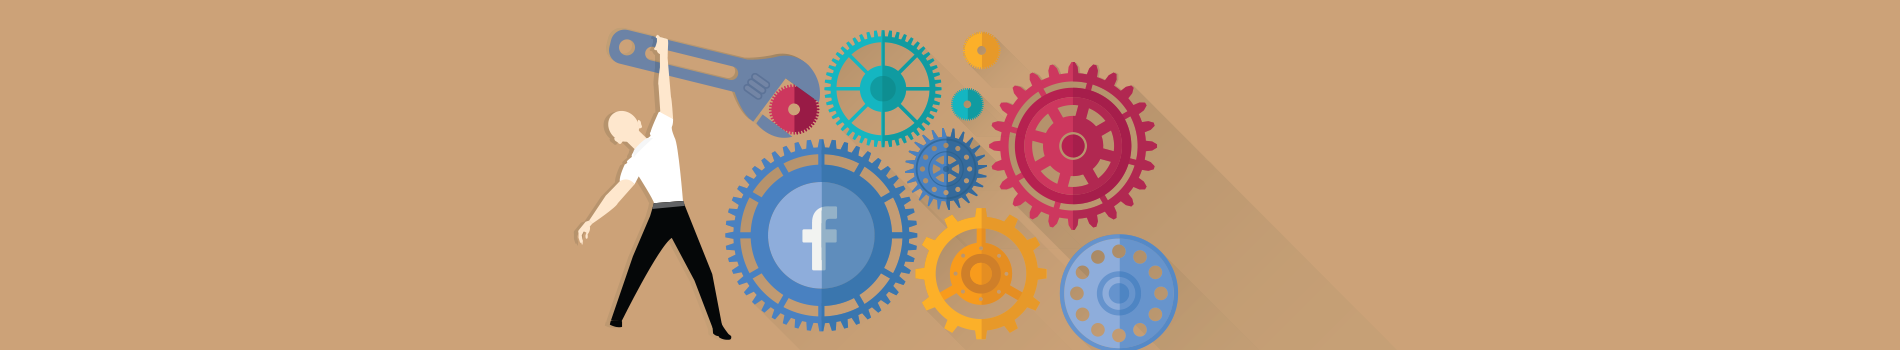 How Does a Facebook Ads Campaign Work?